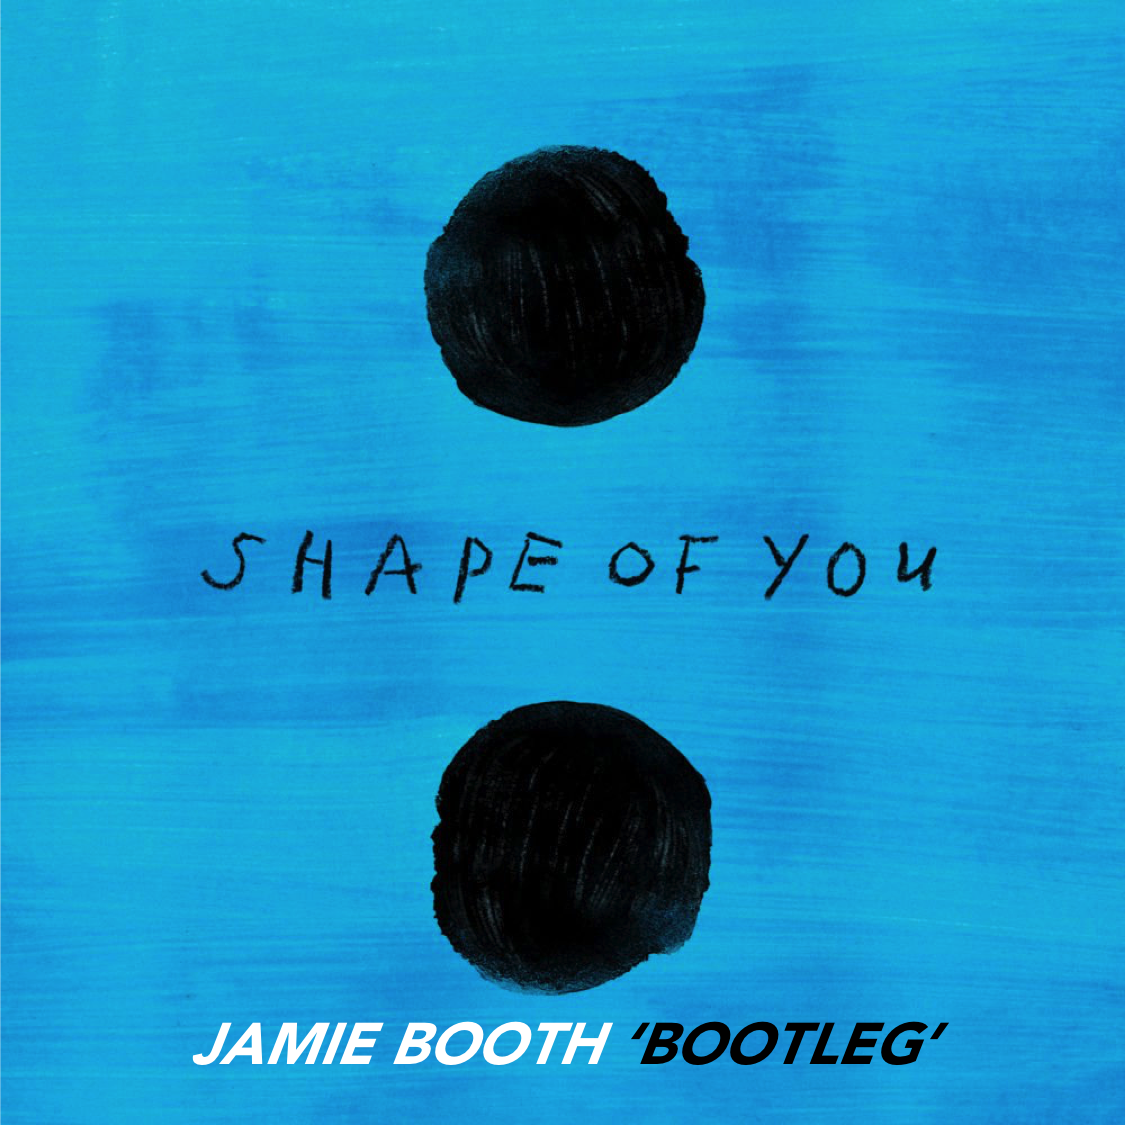 Ed Sheeran - Shape of You (Jamie Booth 'Bootleg') [Extended]